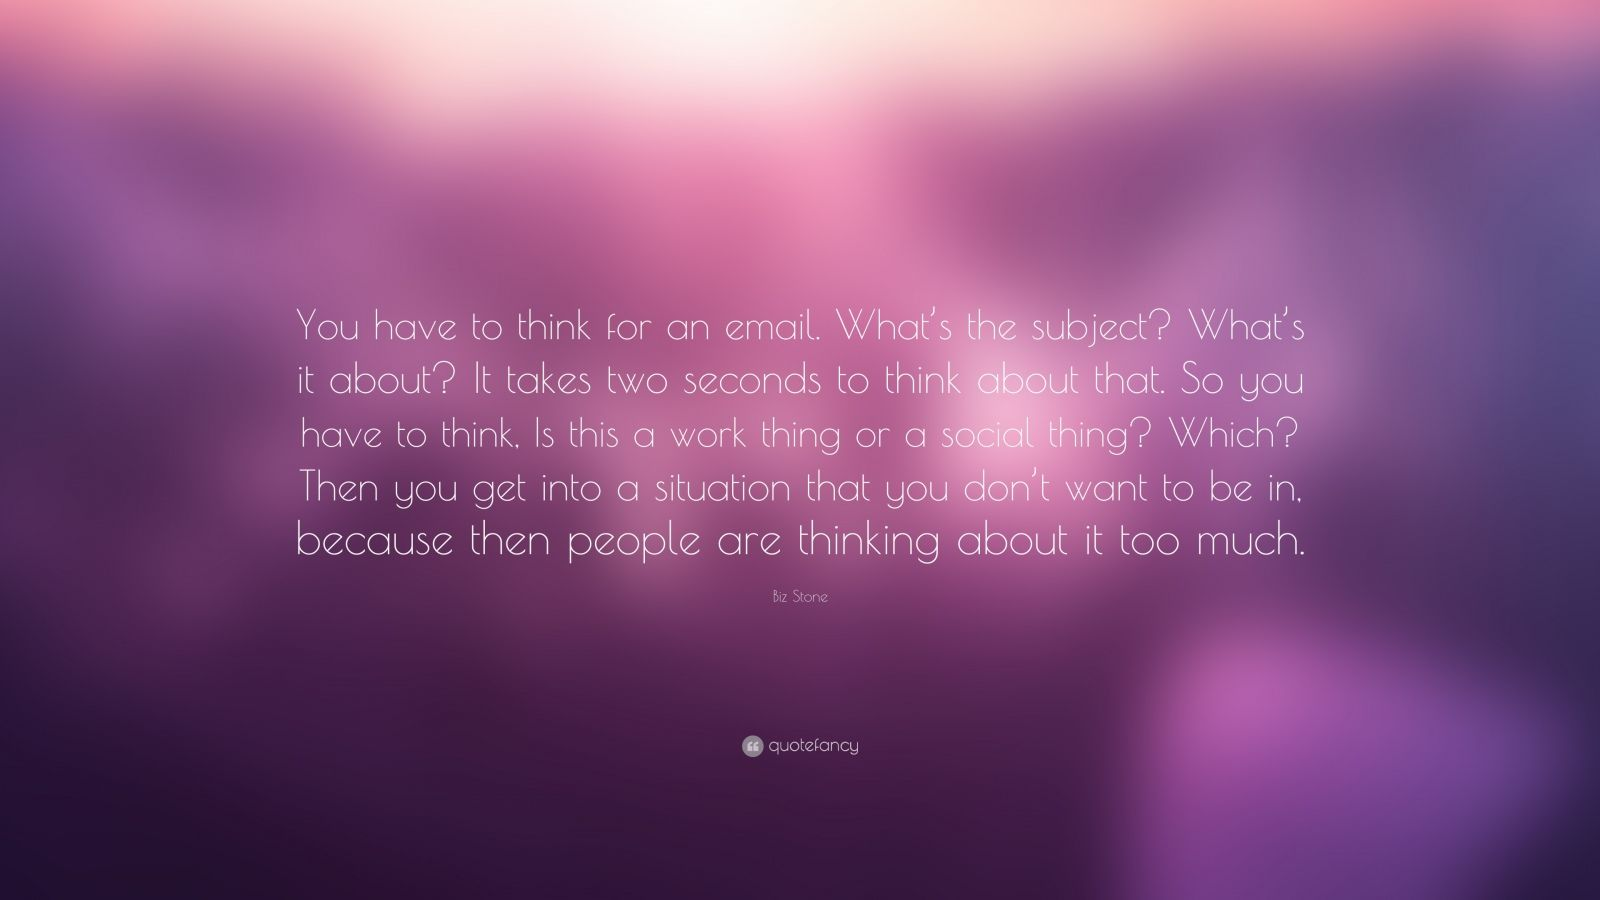 """Biz Stone Quote: """"You have to think for an email. What's the subject? What's it about? It takes two seconds to think about that. So you have to think, Is this a work thing or a social thing? Which? Then you get into a situation that you don't want to be in, because then people are thinking about it too much."""""""